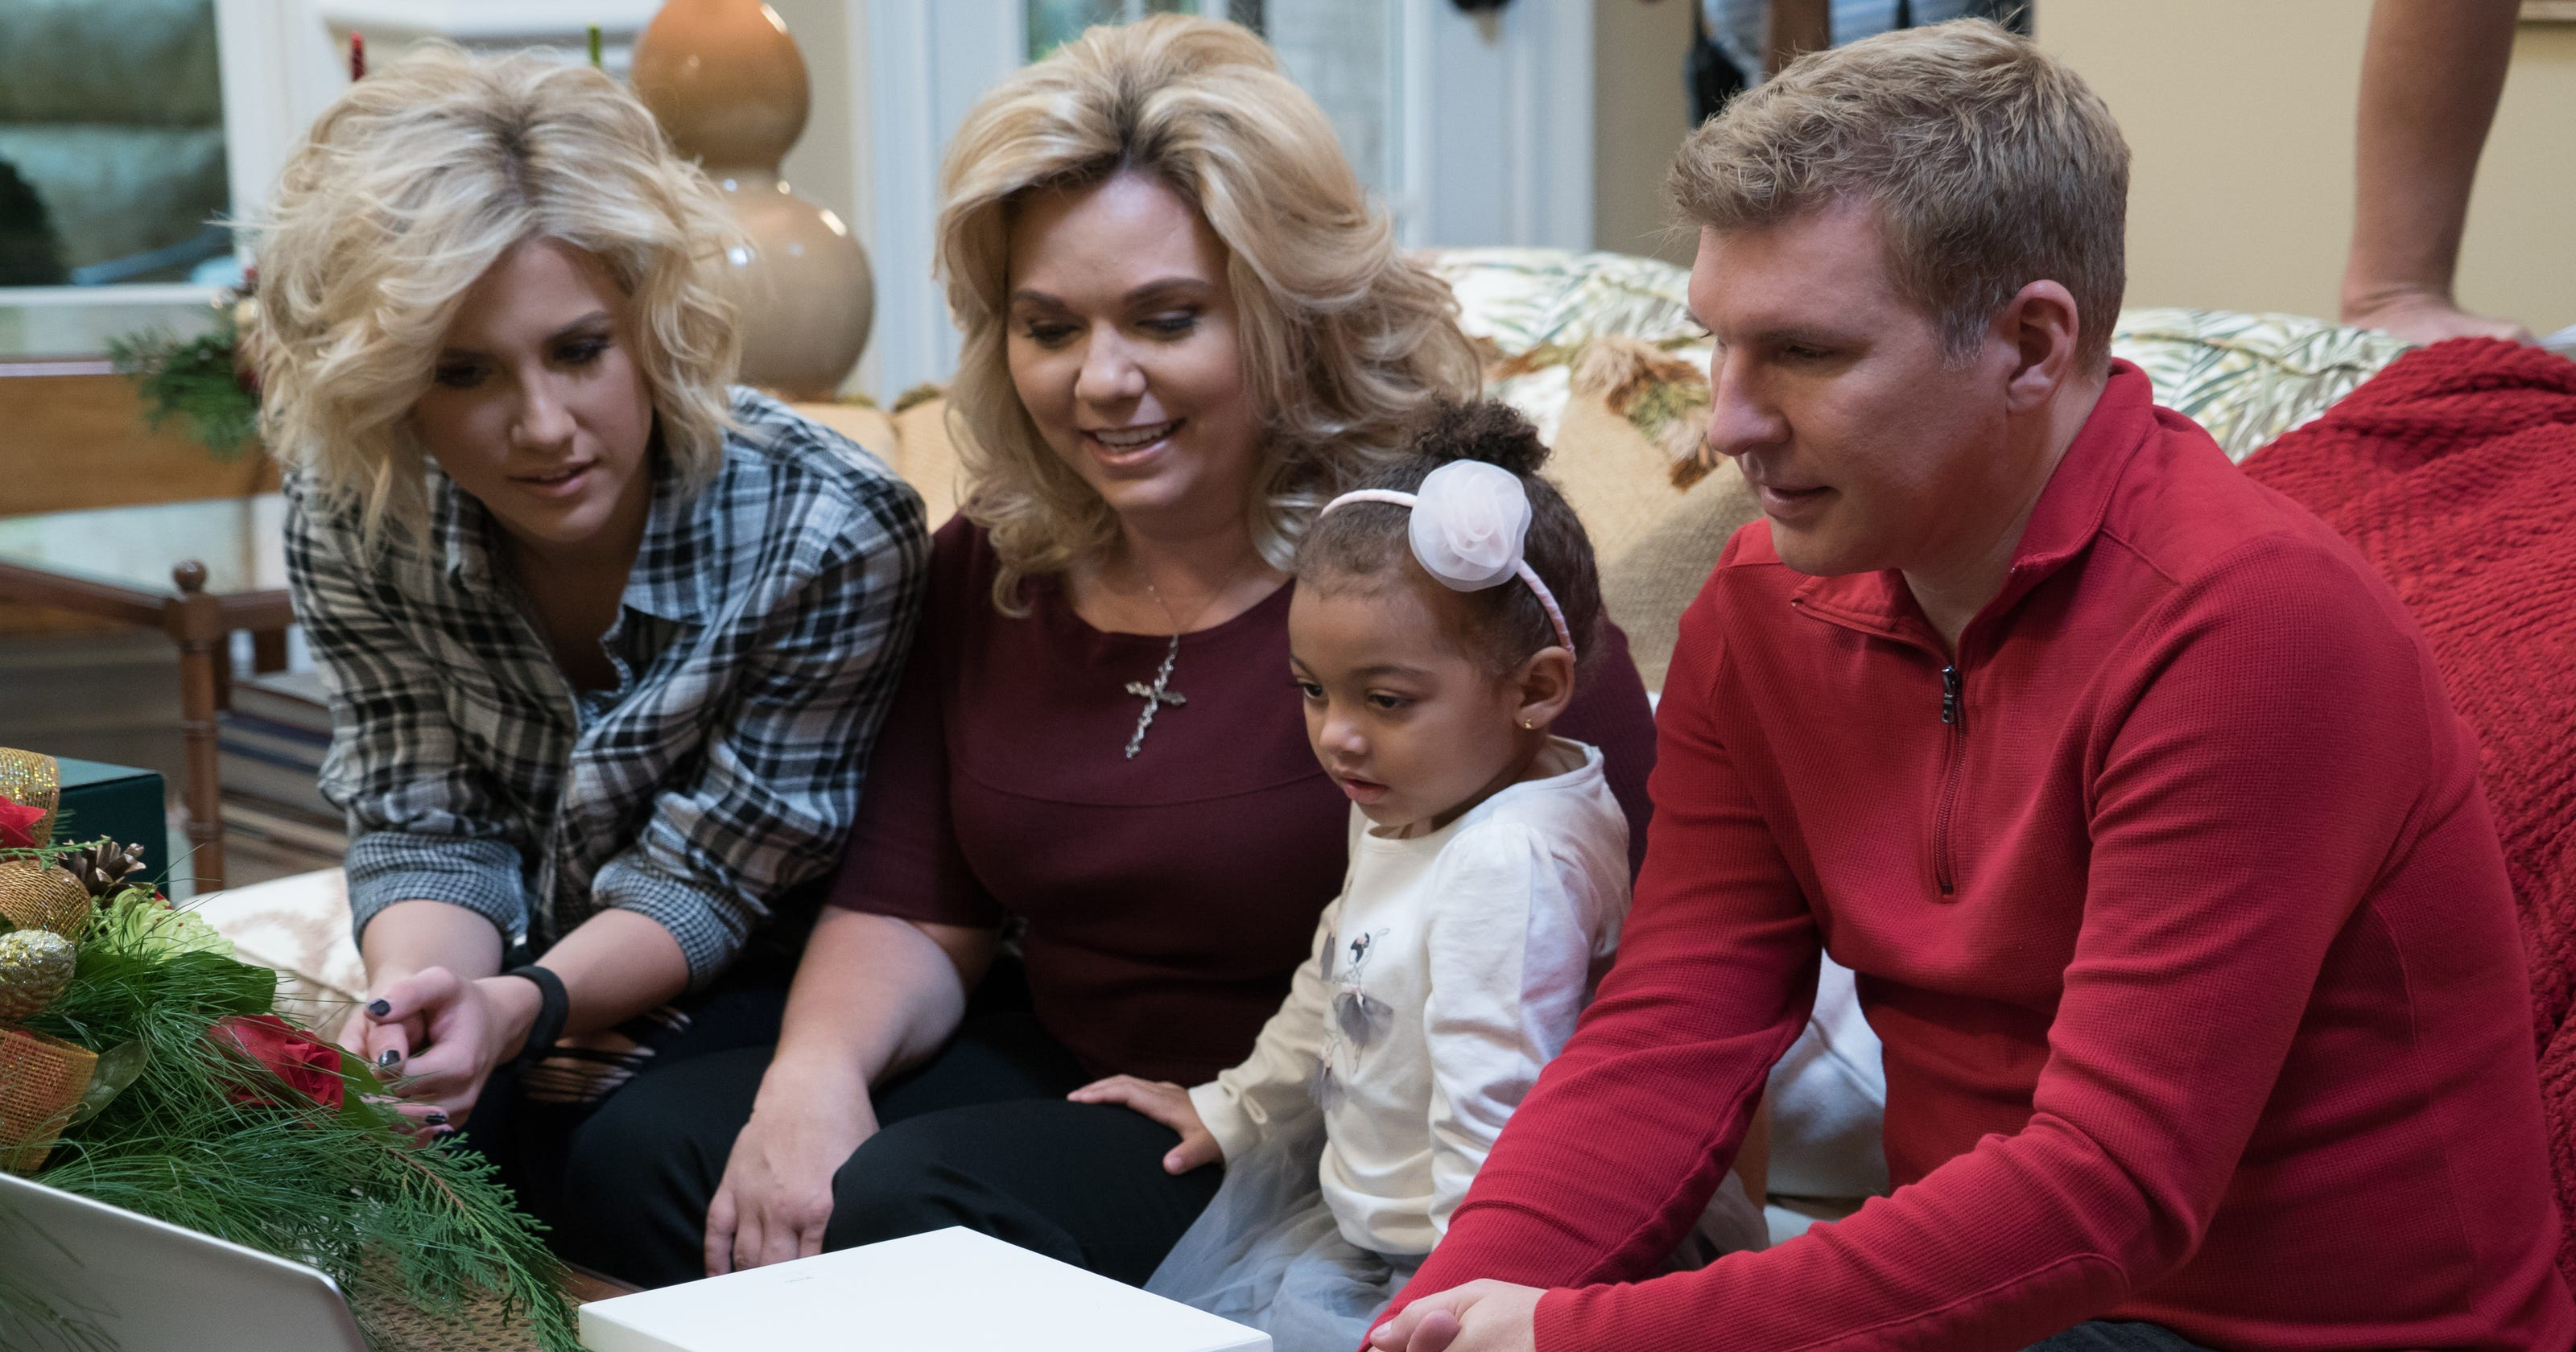 Chrisley Knows Best' TV show stars say Chloe is 'surrounded